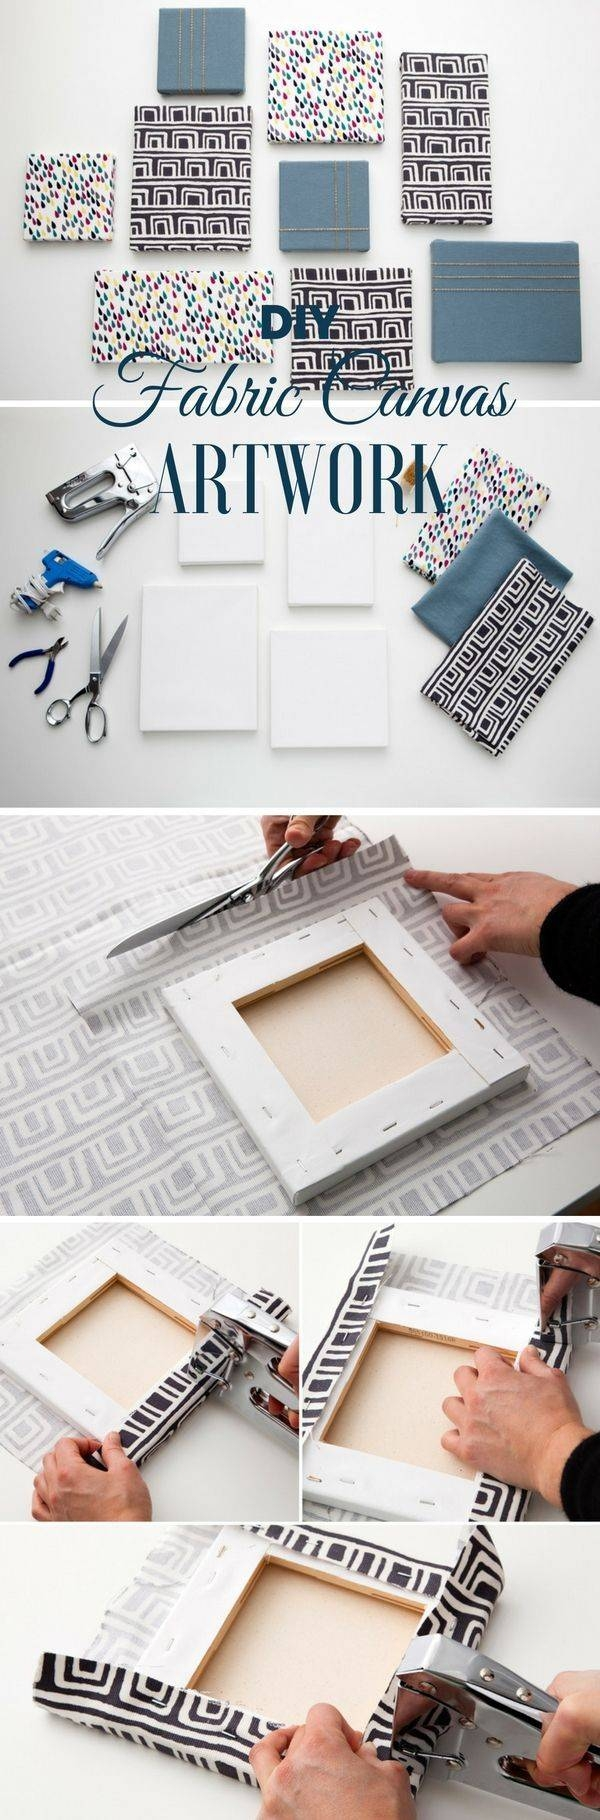 25+ Unique Diy Wall Art Ideas On Pinterest | Diy Wall Décor, Diy With Current Do It Yourself 3D Wall Art (Gallery 14 of 20)